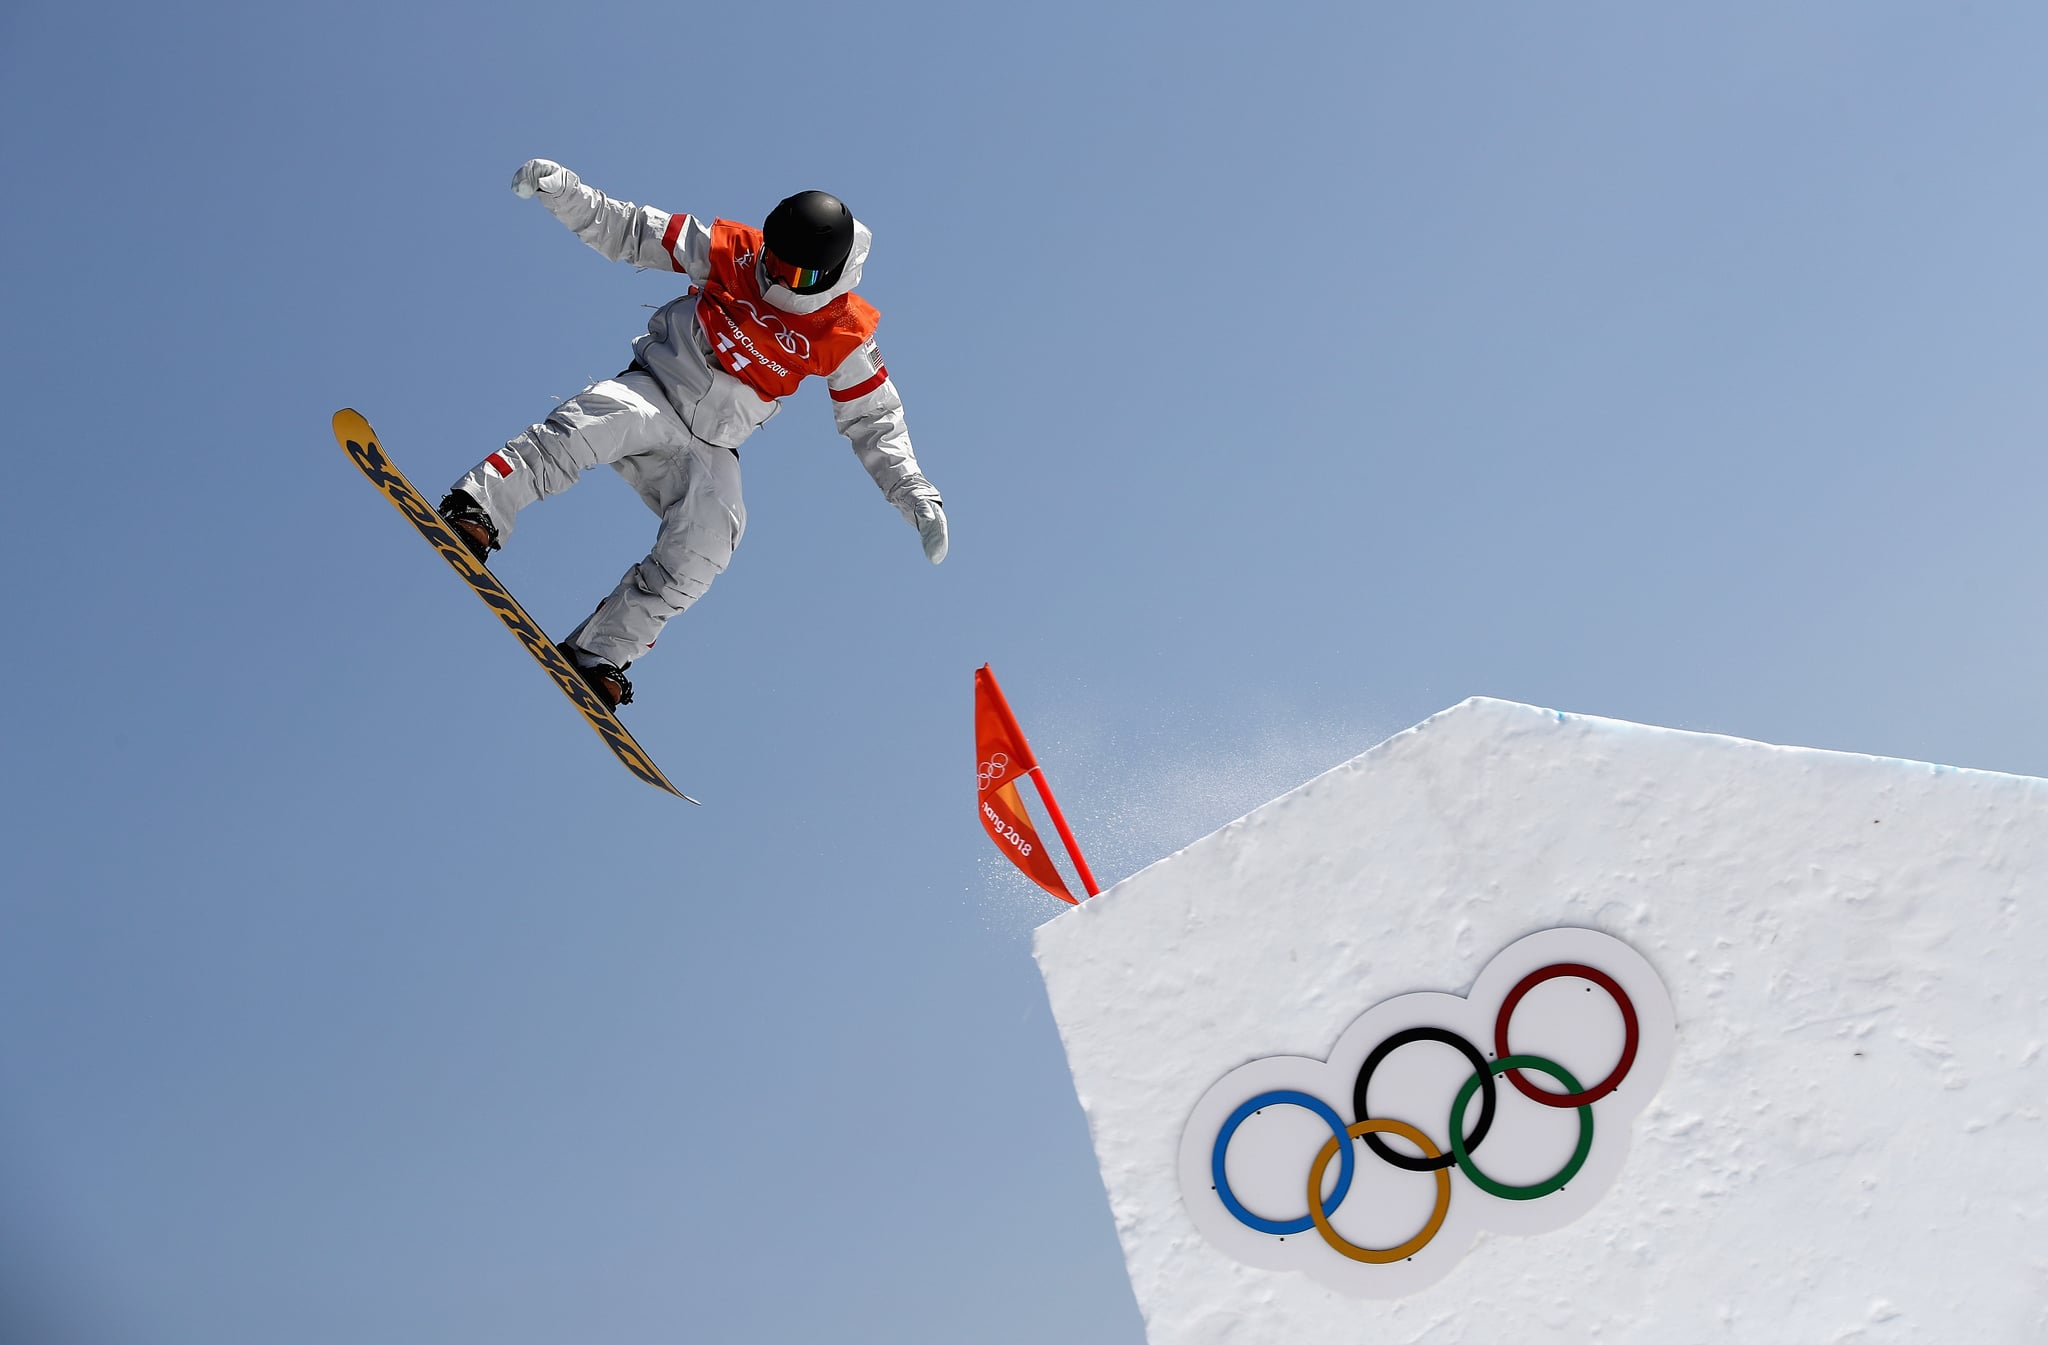 Canada's Sebastien Toutant wins gold medal in Olympic big air